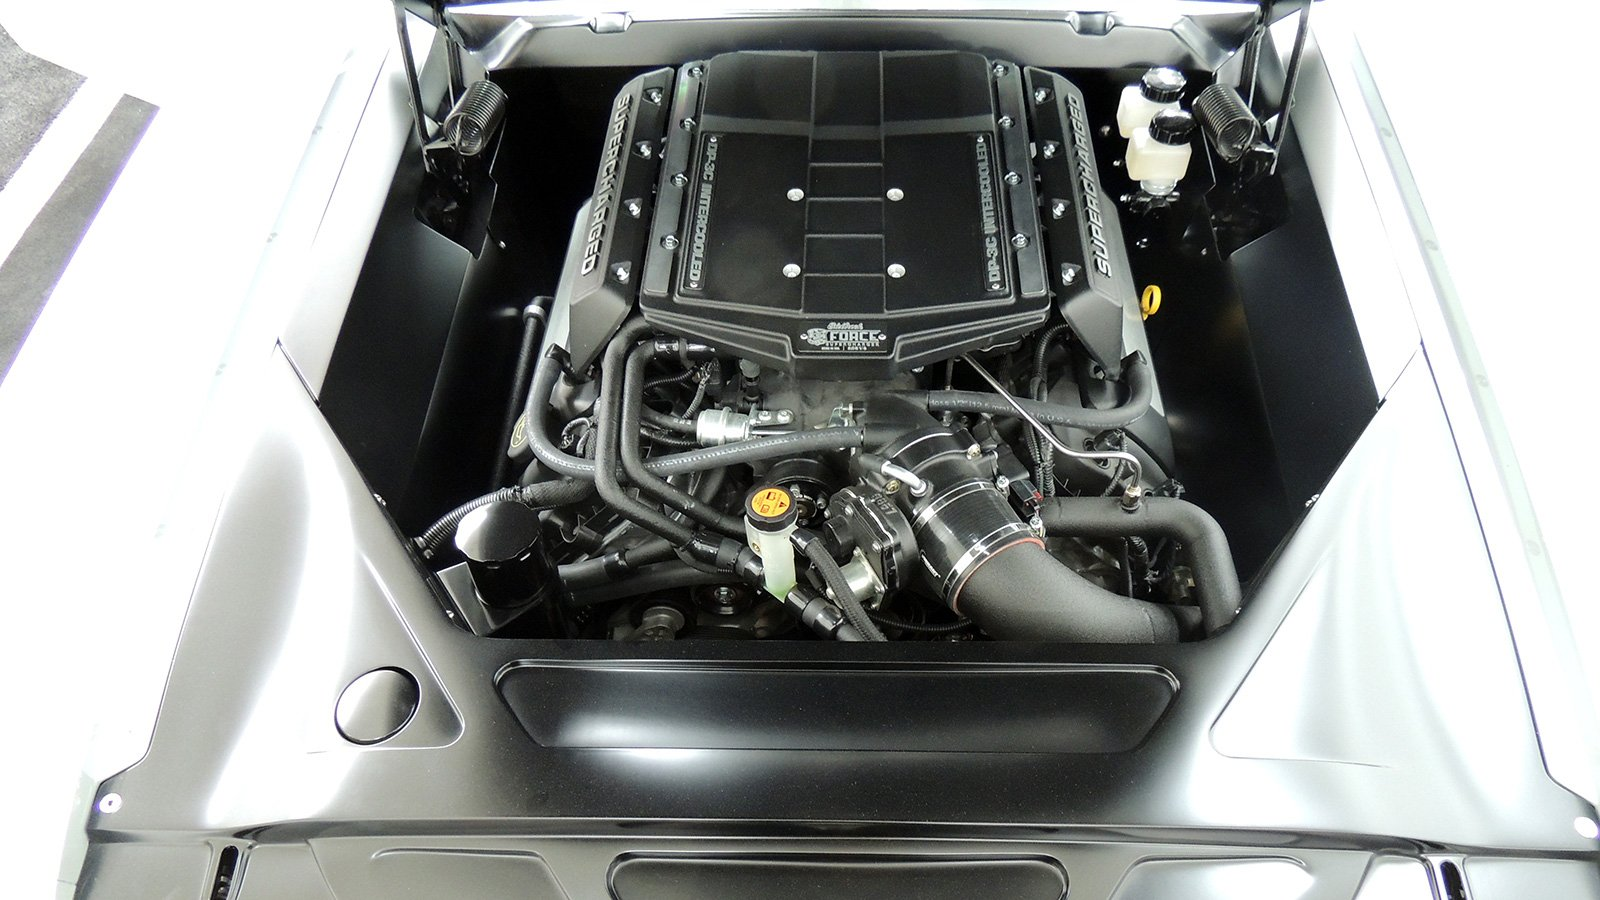 65-mustang-vapor-engine-top